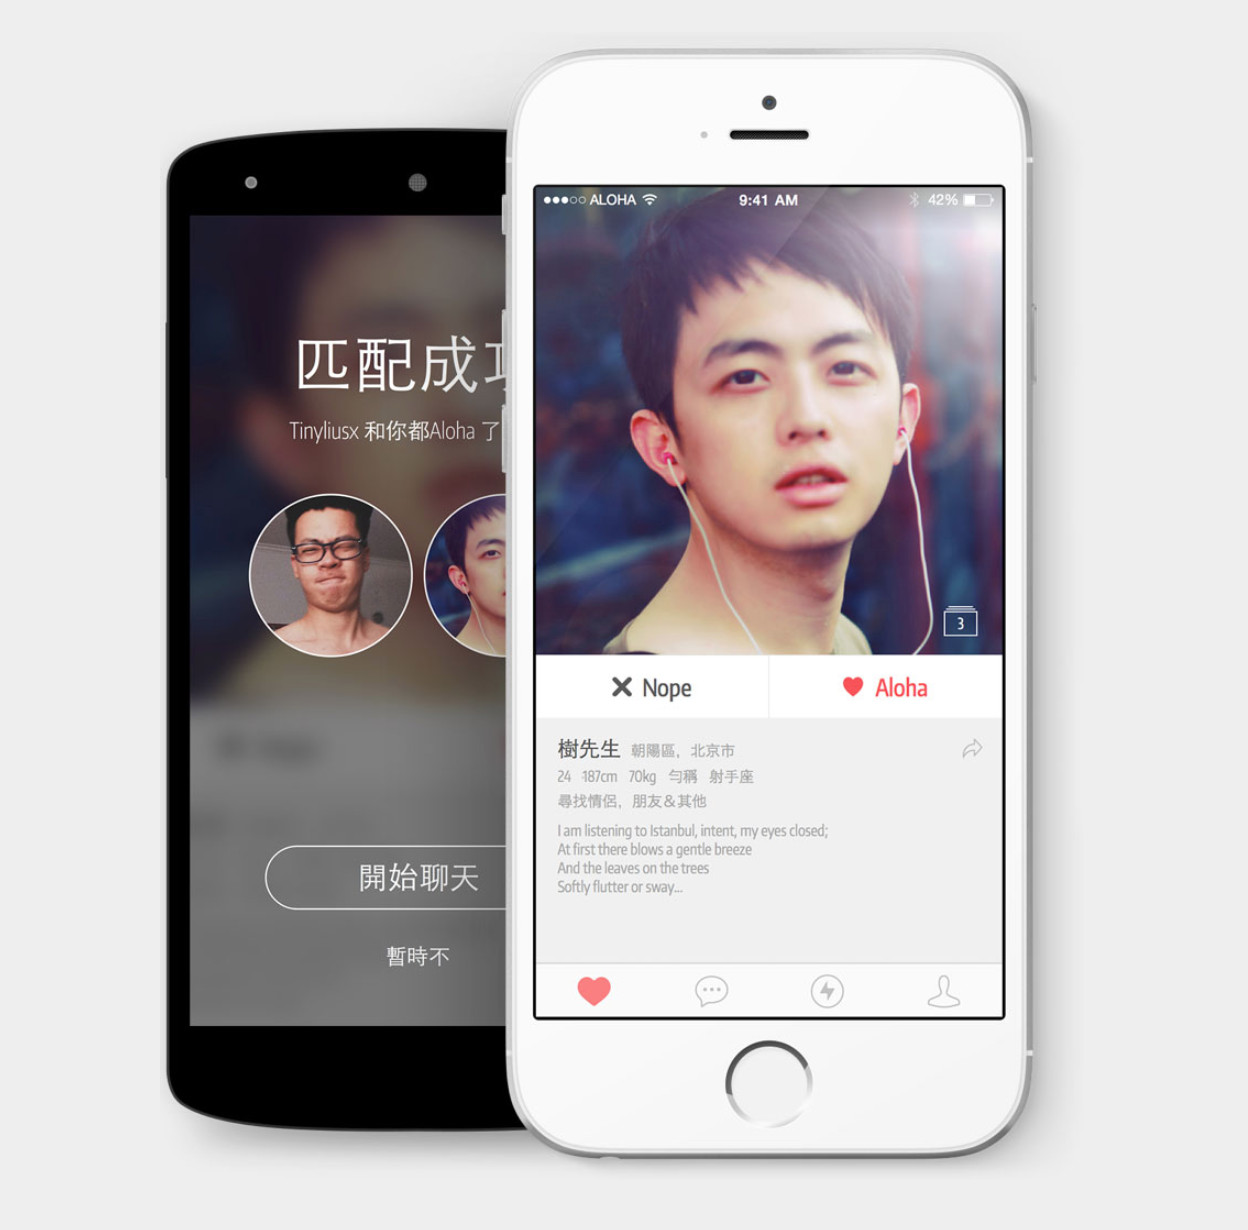 China s largest social networking app for gay men and the one pla